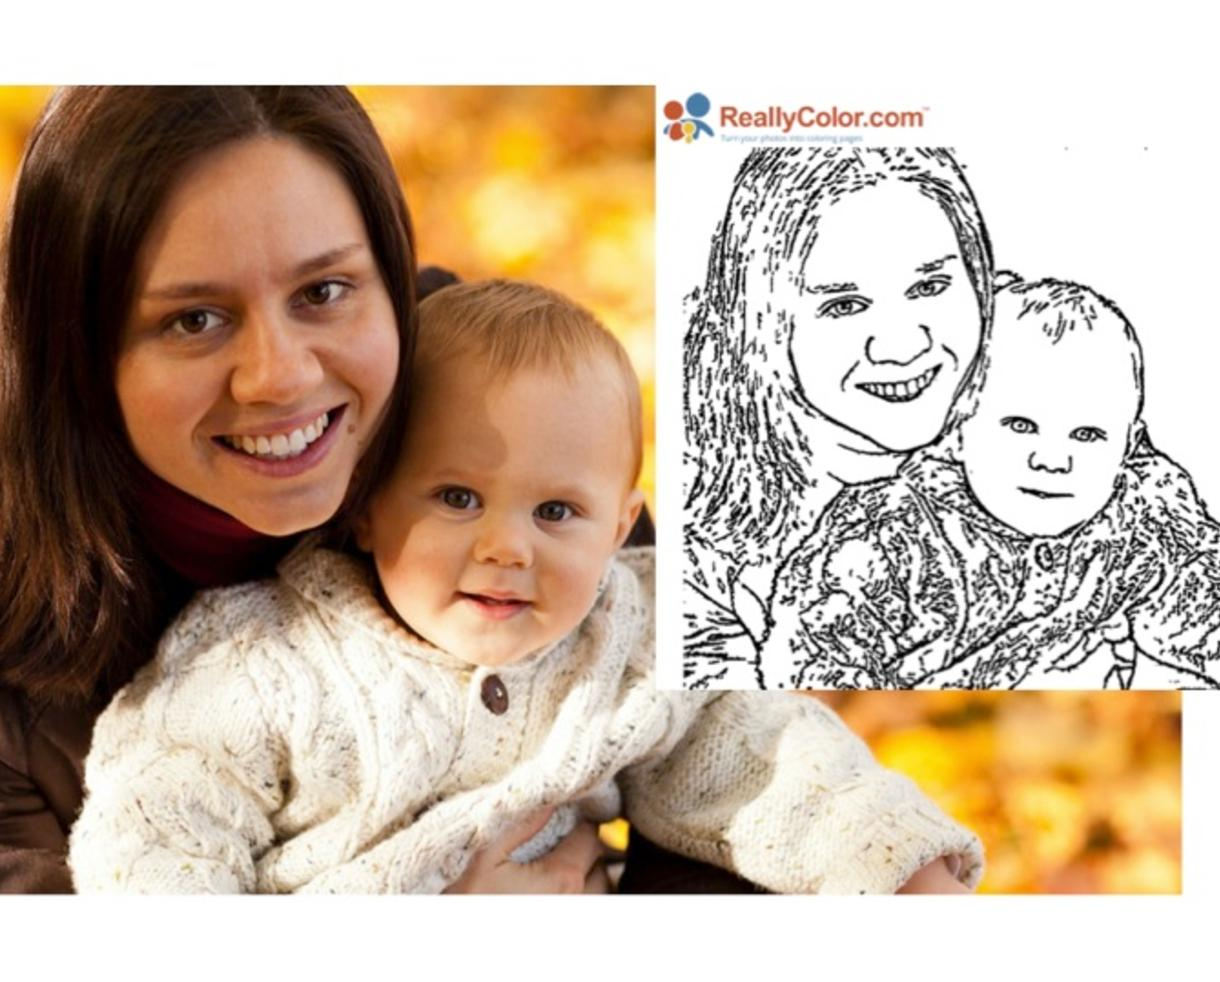 Turn Your Photos Into Coloring Pages at ReallyColorcom 5 for